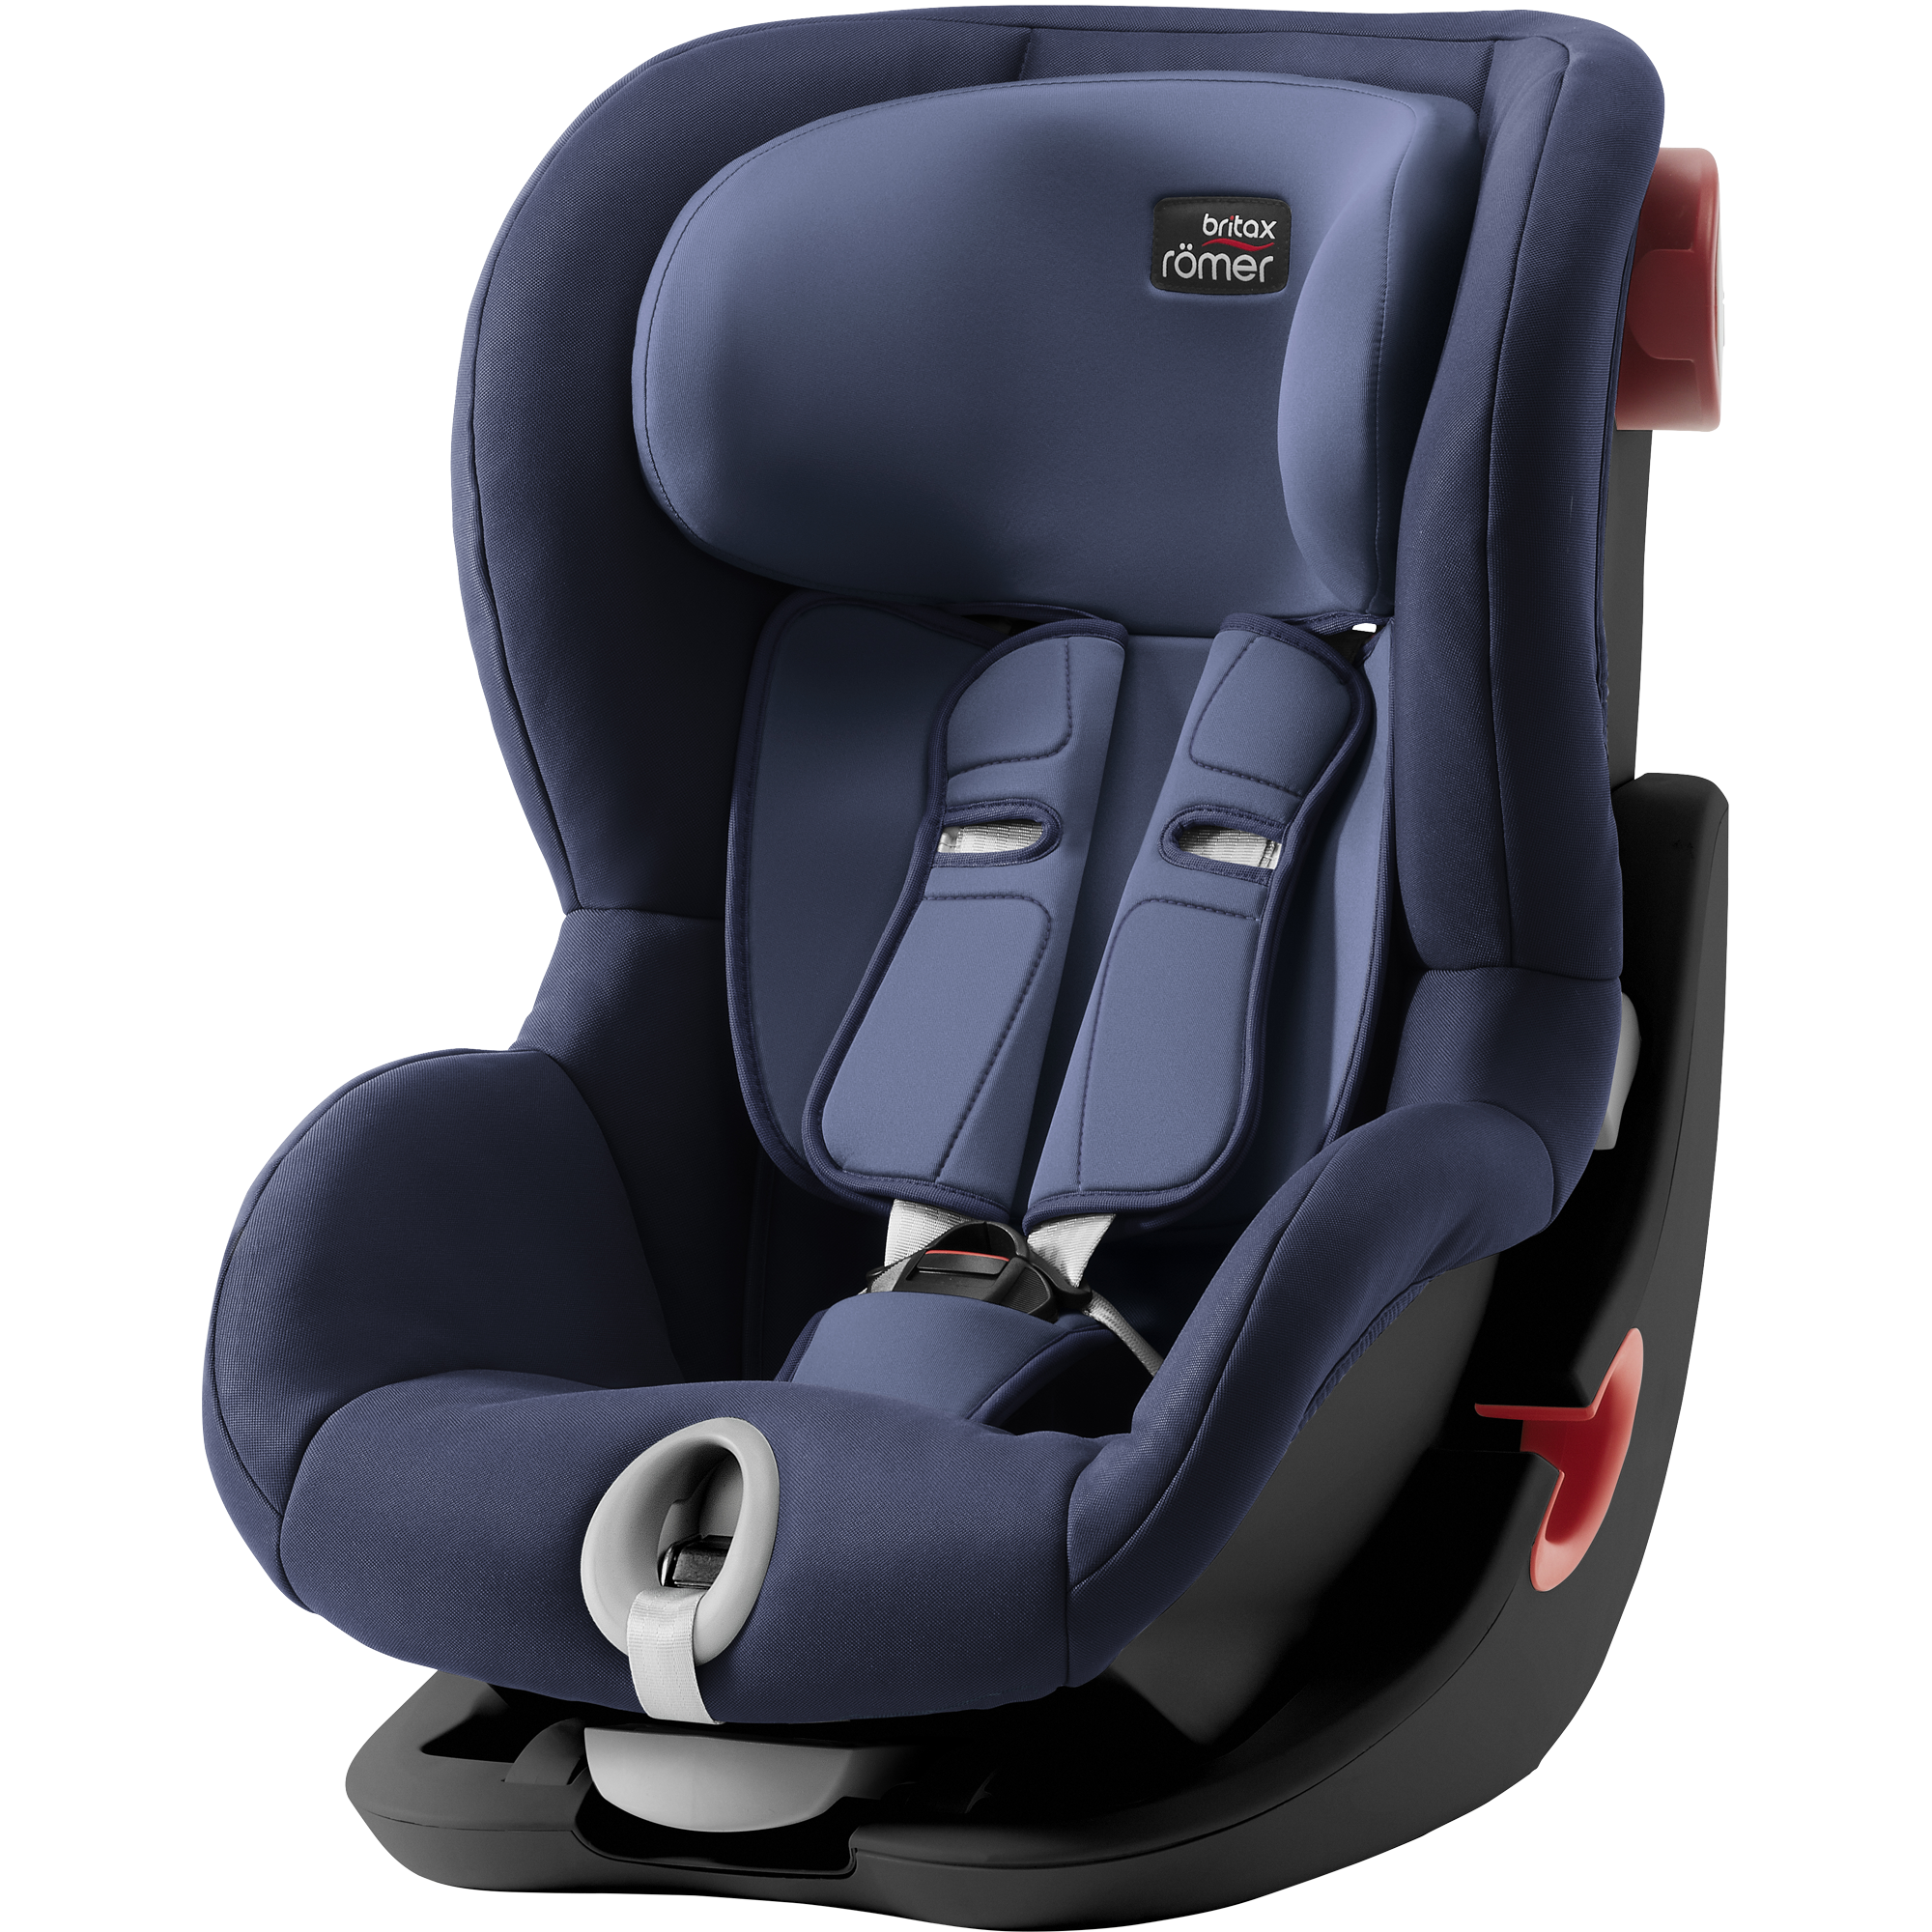 Romer Britax Autosedačka King II Black Edition - Moonlight Blue